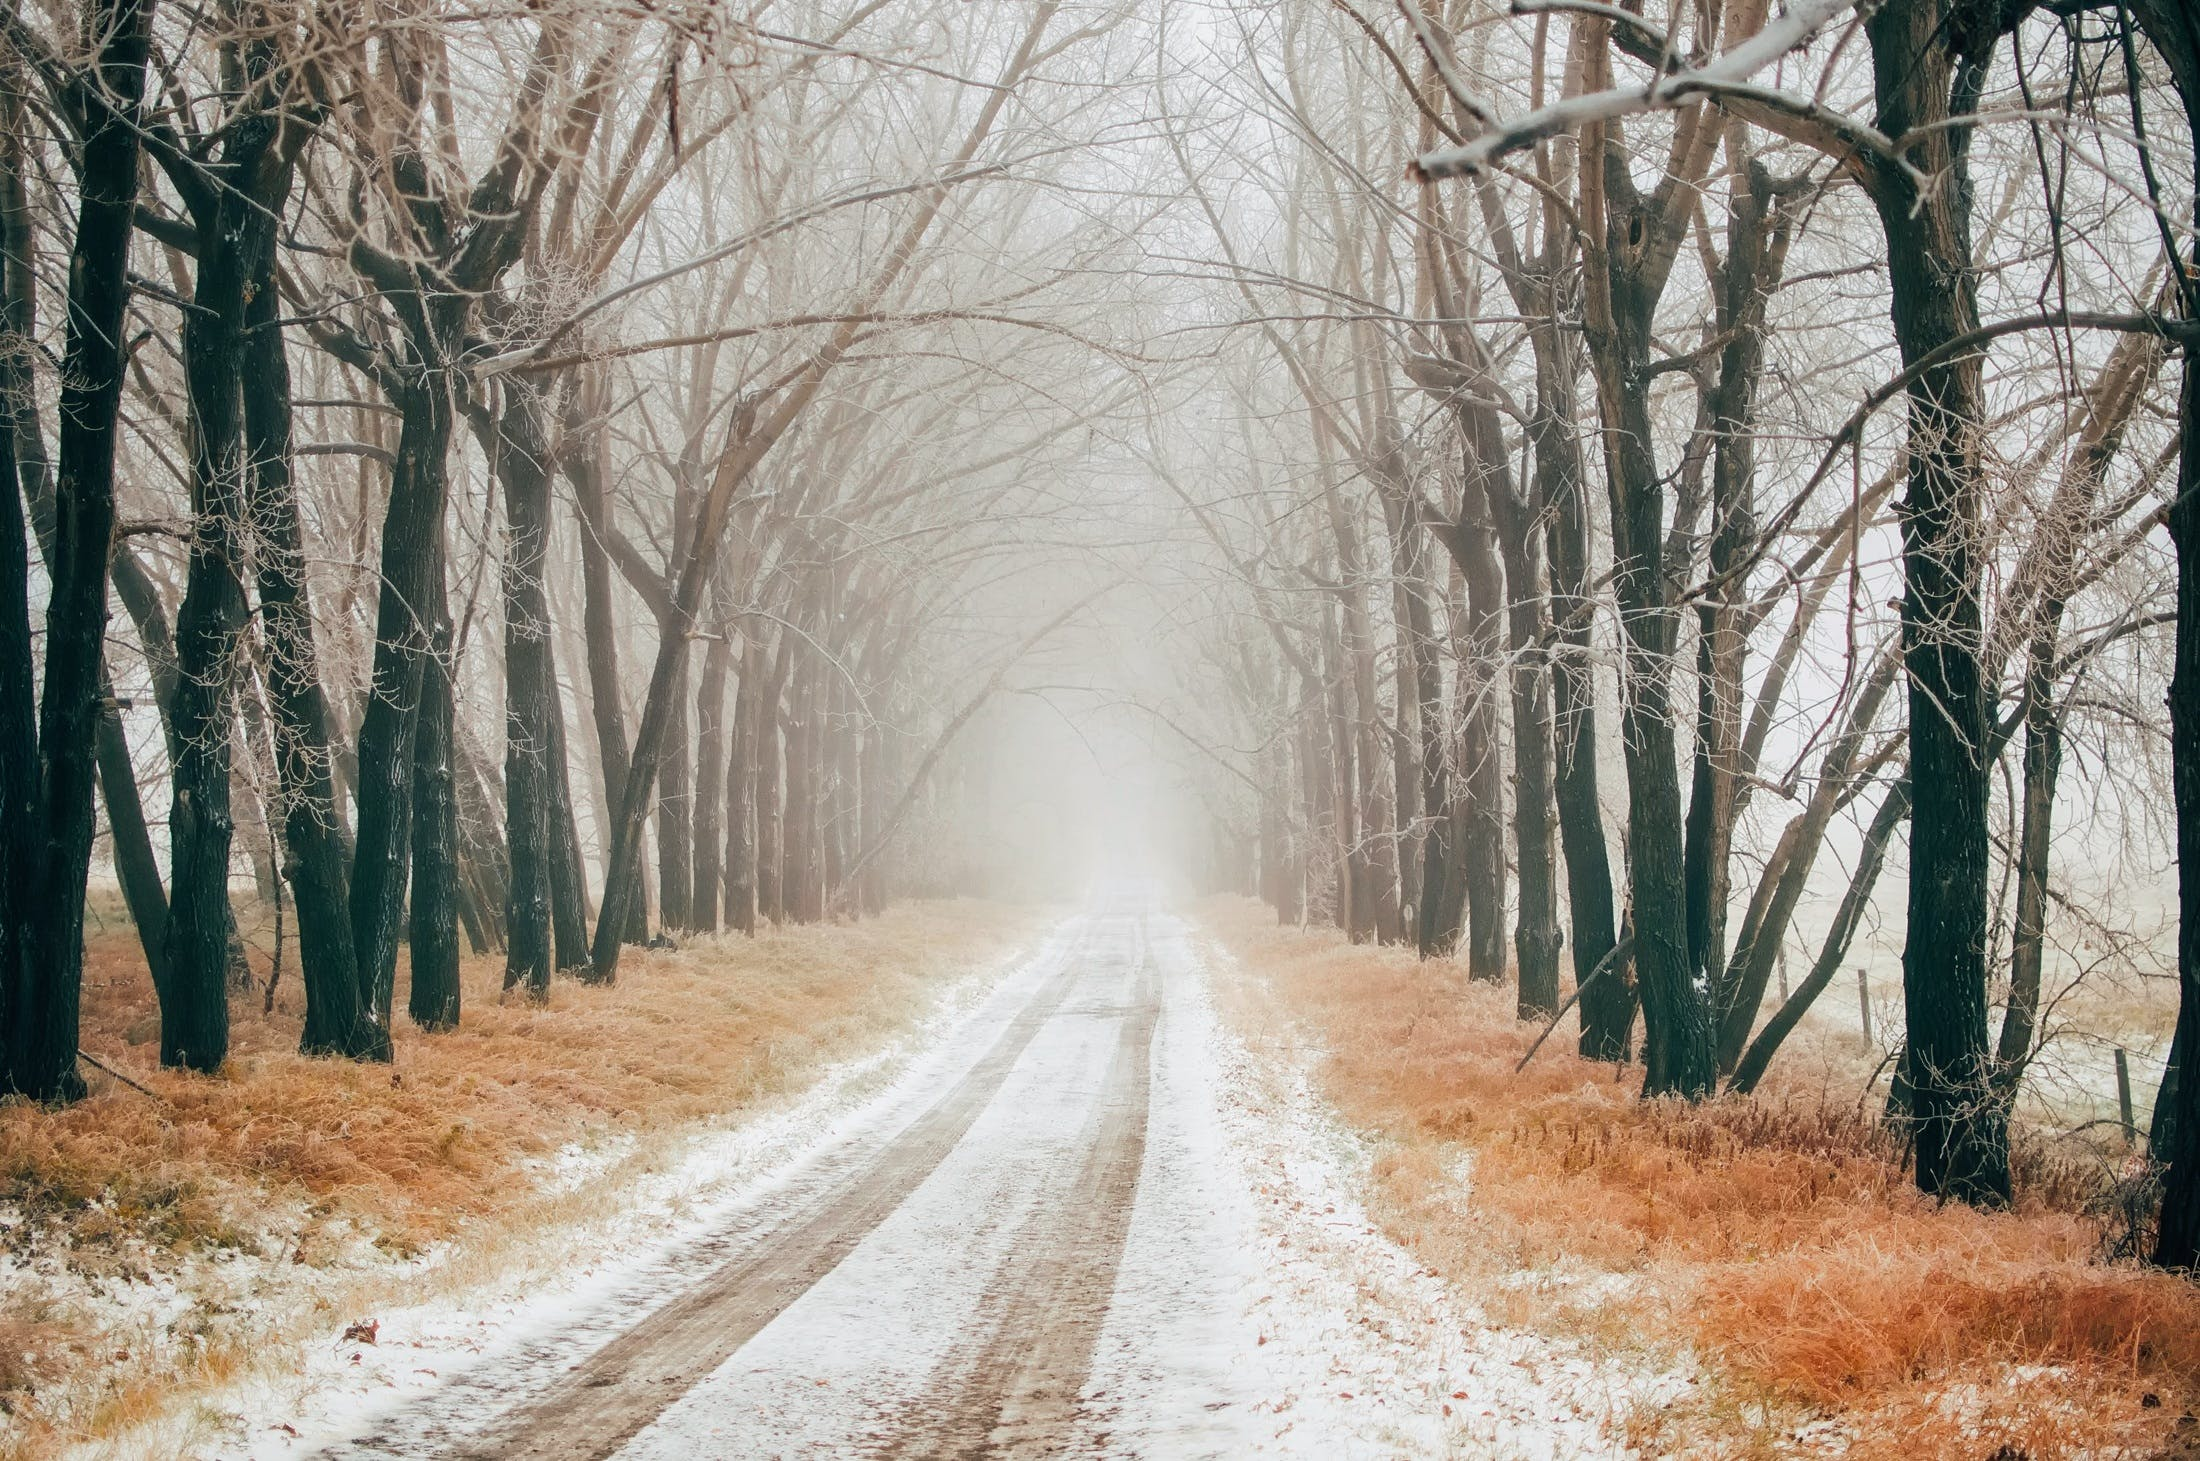 Free stock photo of snow, road, landscape, nature